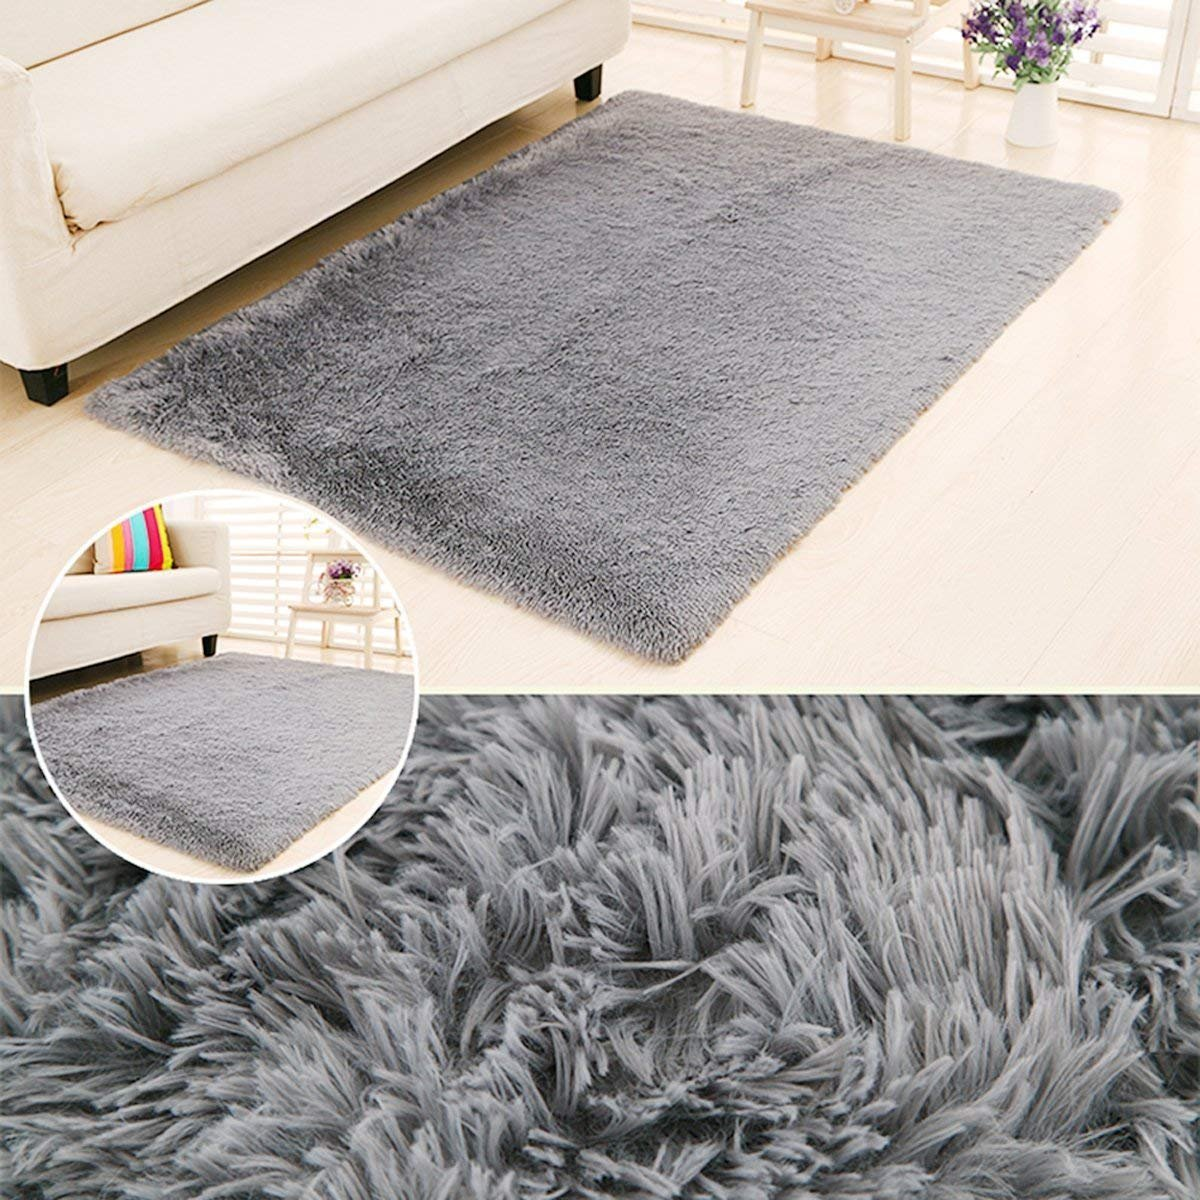 LOCHAS Ultra Soft Indoor Area Rugs Fluffy Living Room Carpets Suitable for Children Bedroom Home Decor Nursery Rugs 4 Feet by 5.3 Feet (Gray)